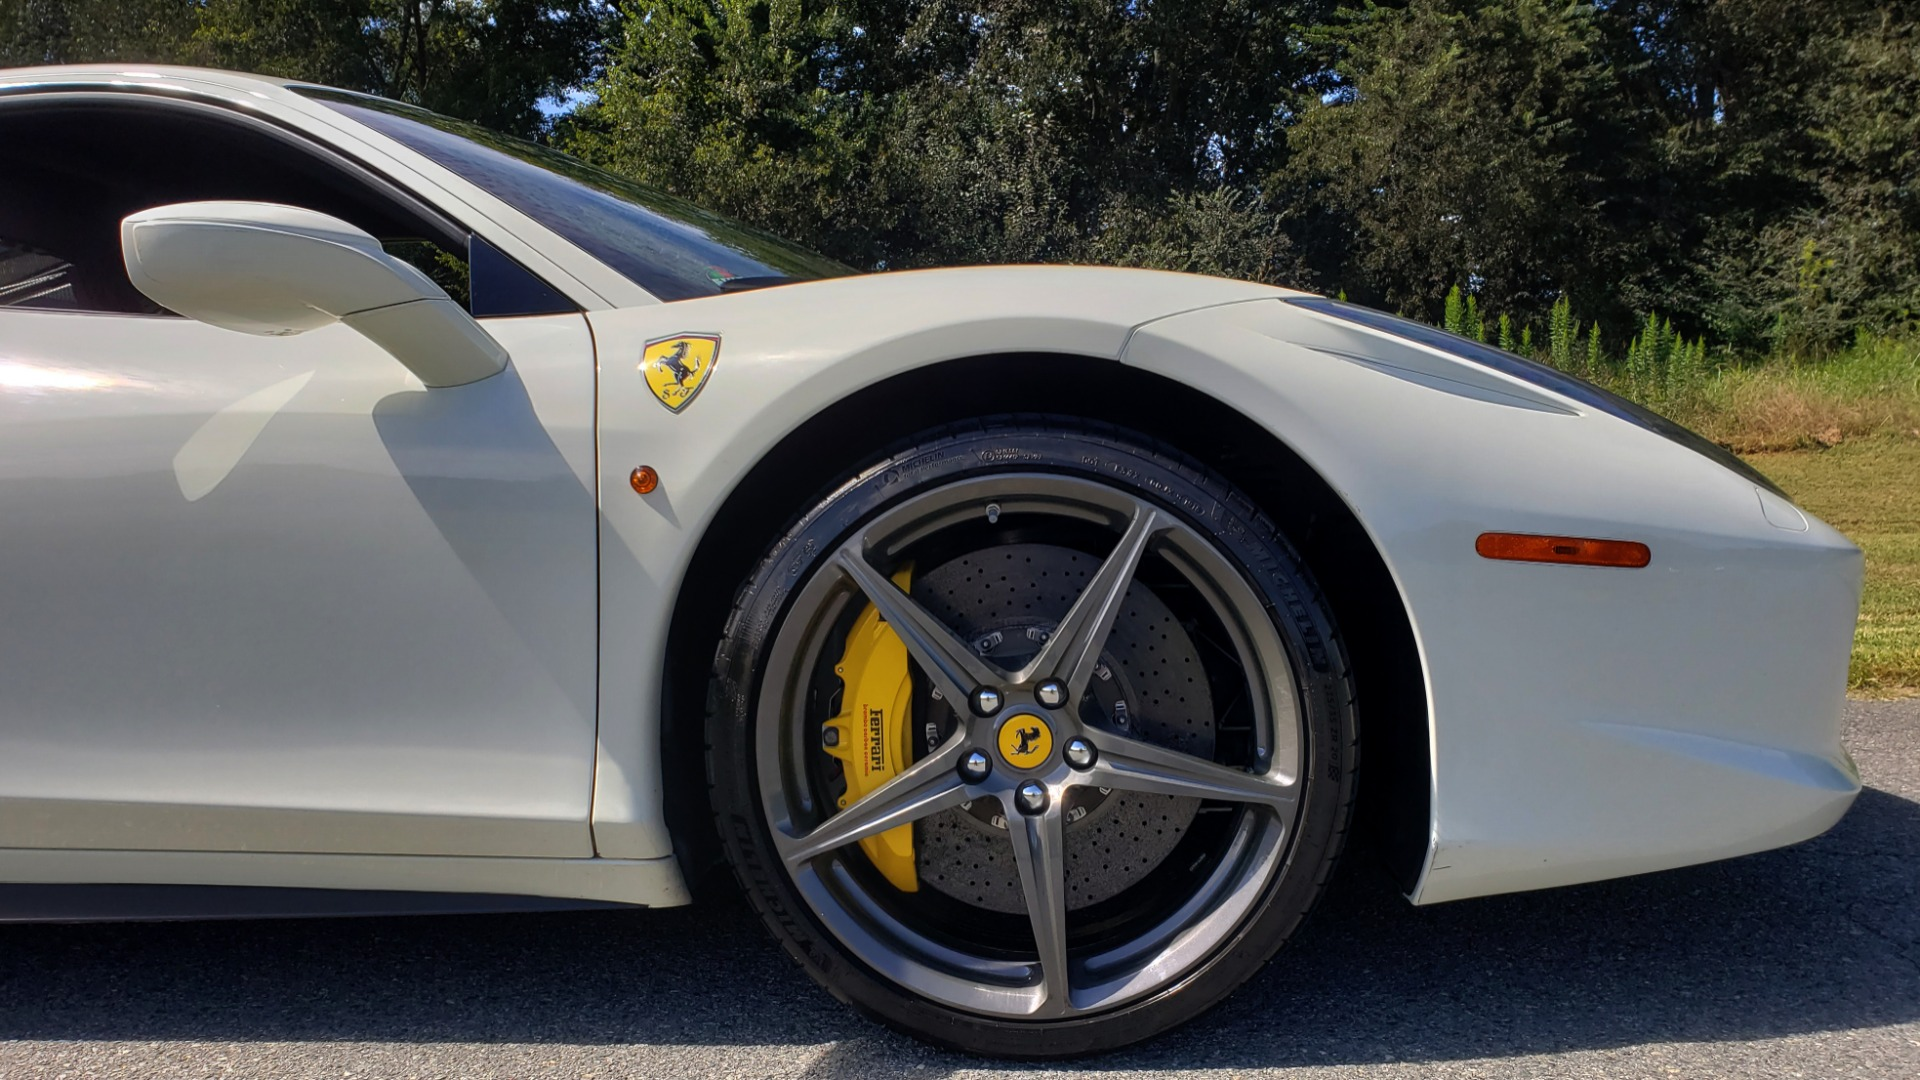 Used 2012 Ferrari 458 ITALIA COUPE / 4.5L V8 / 7-SPEED AUTO / LOW MILES SUPER CLEAN for sale Sold at Formula Imports in Charlotte NC 28227 30